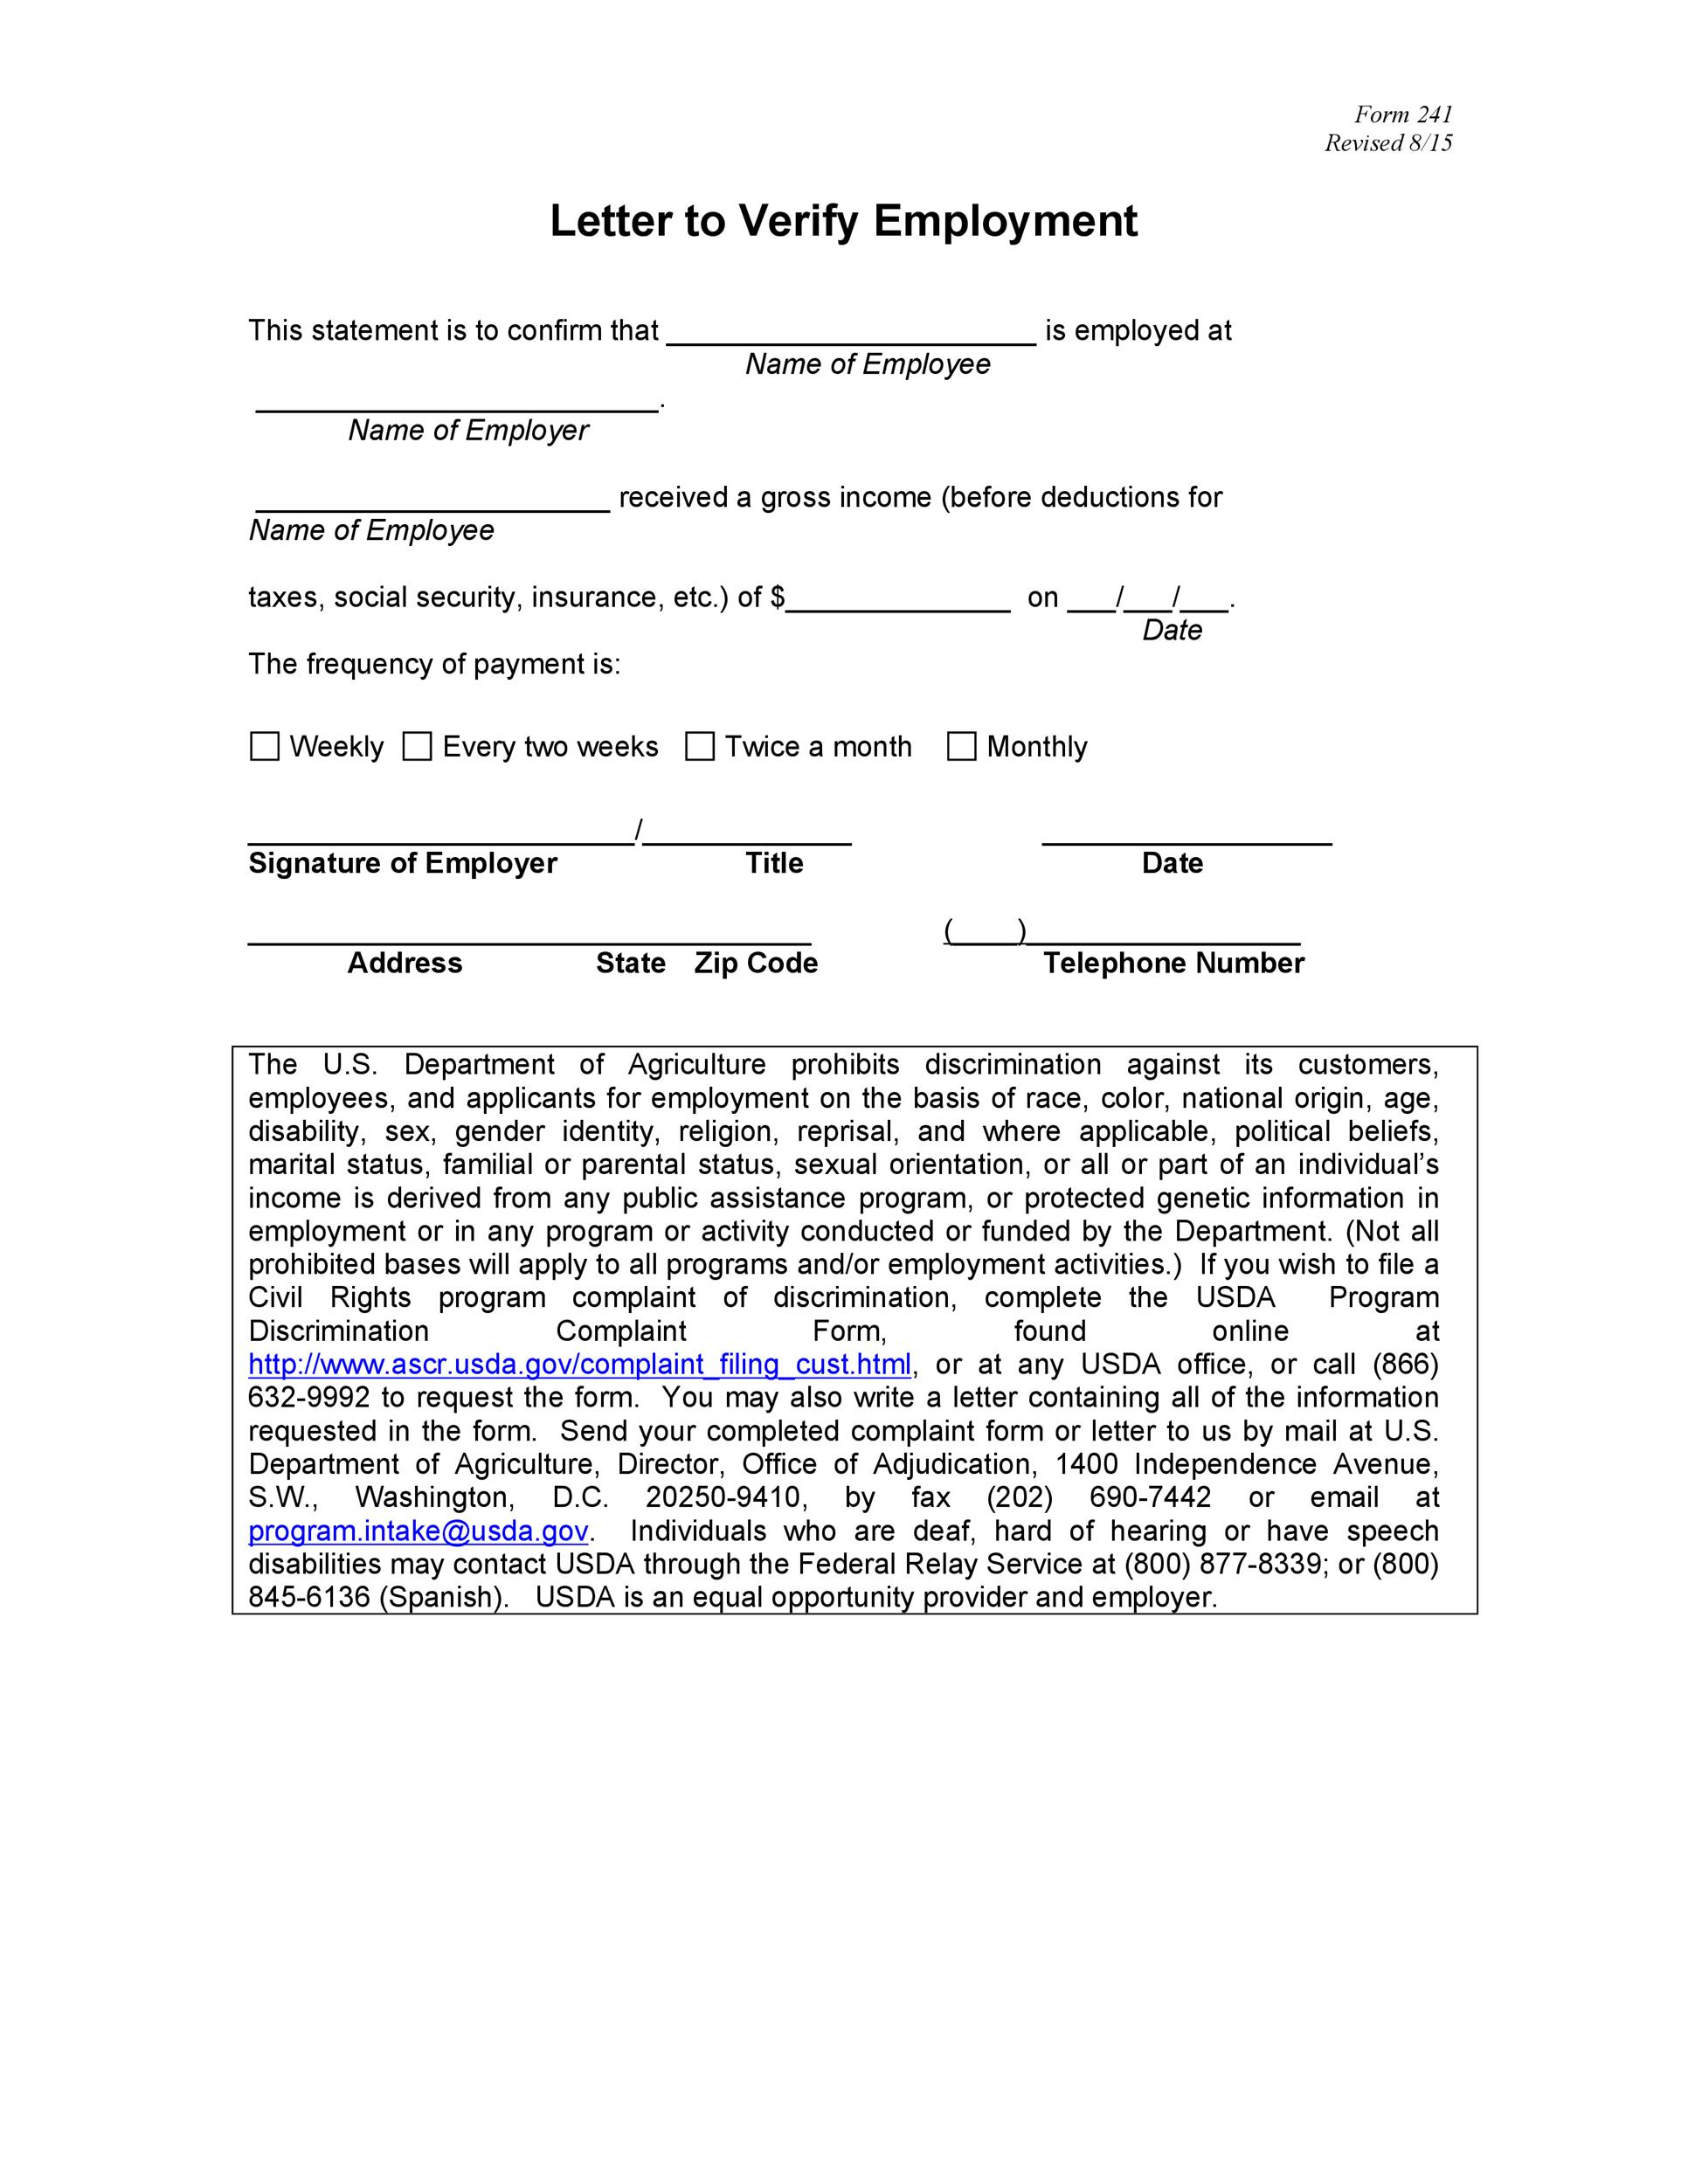 40 Proof of Employment Letters Verification Forms Samples – Employment Verification Letter Sample